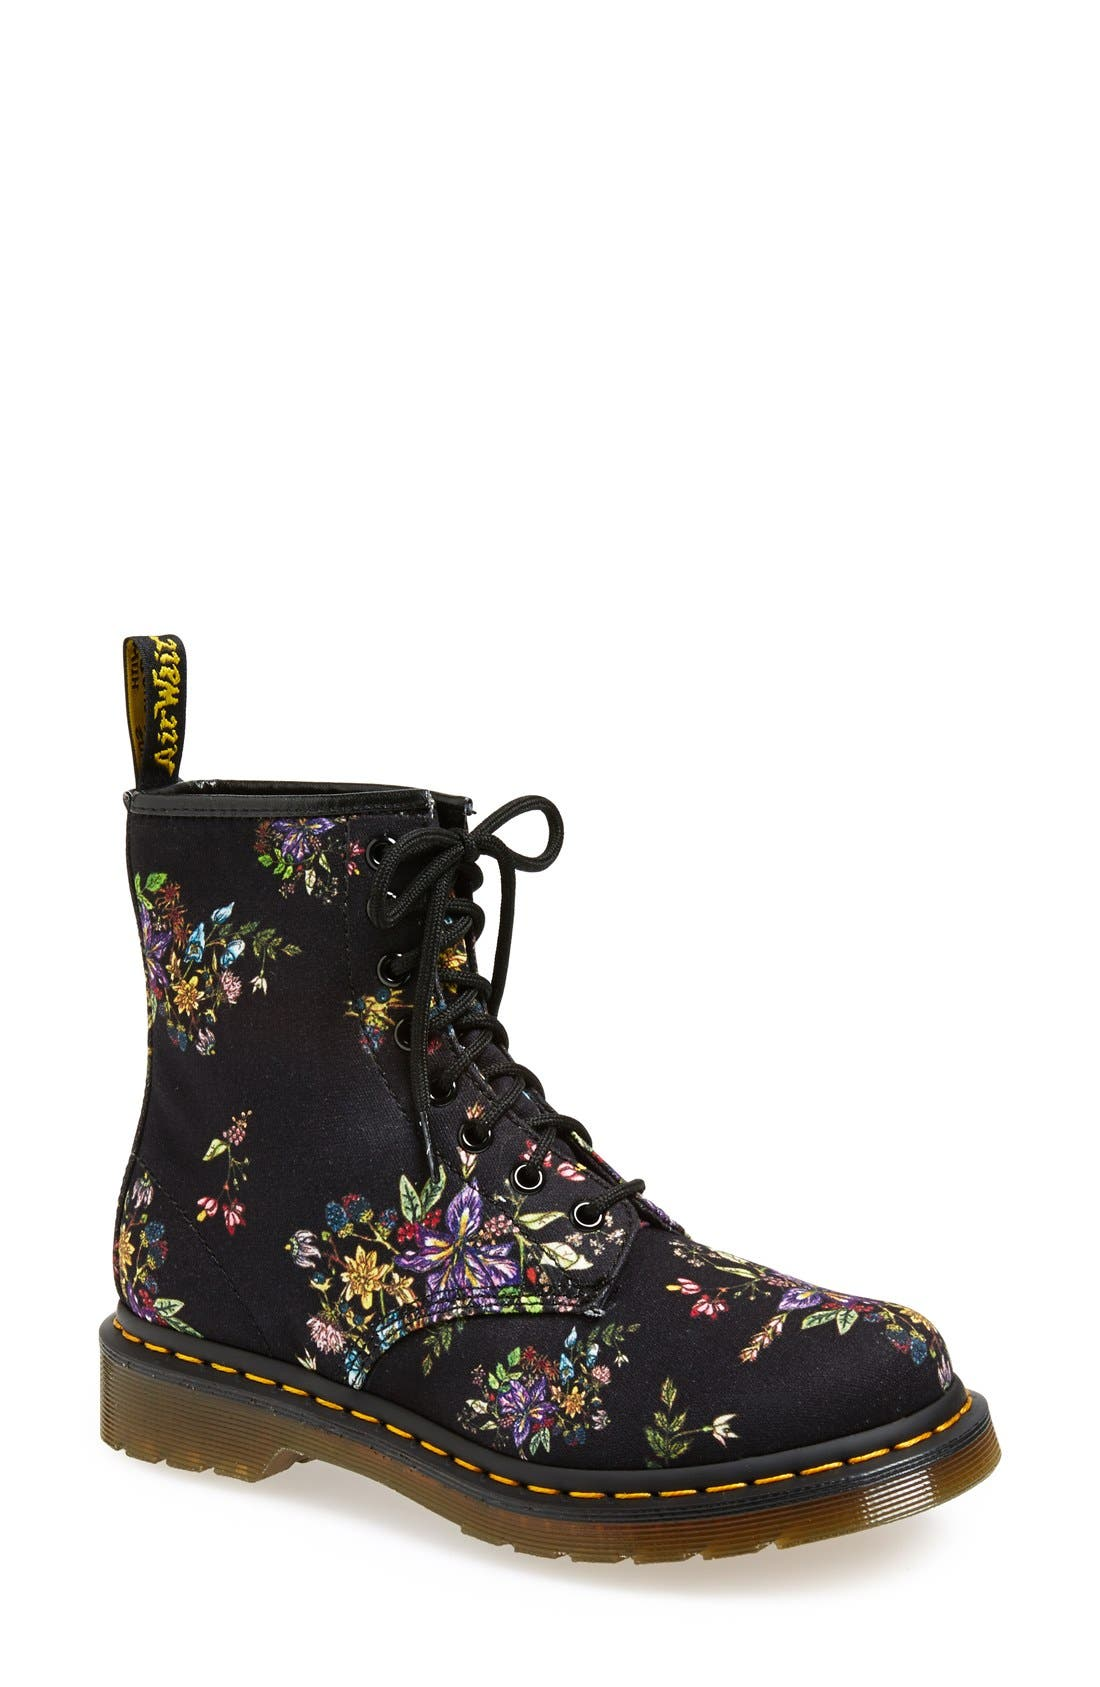 Alternate Image 1 Selected - Dr. Martens 'Castel' Boot (Women)